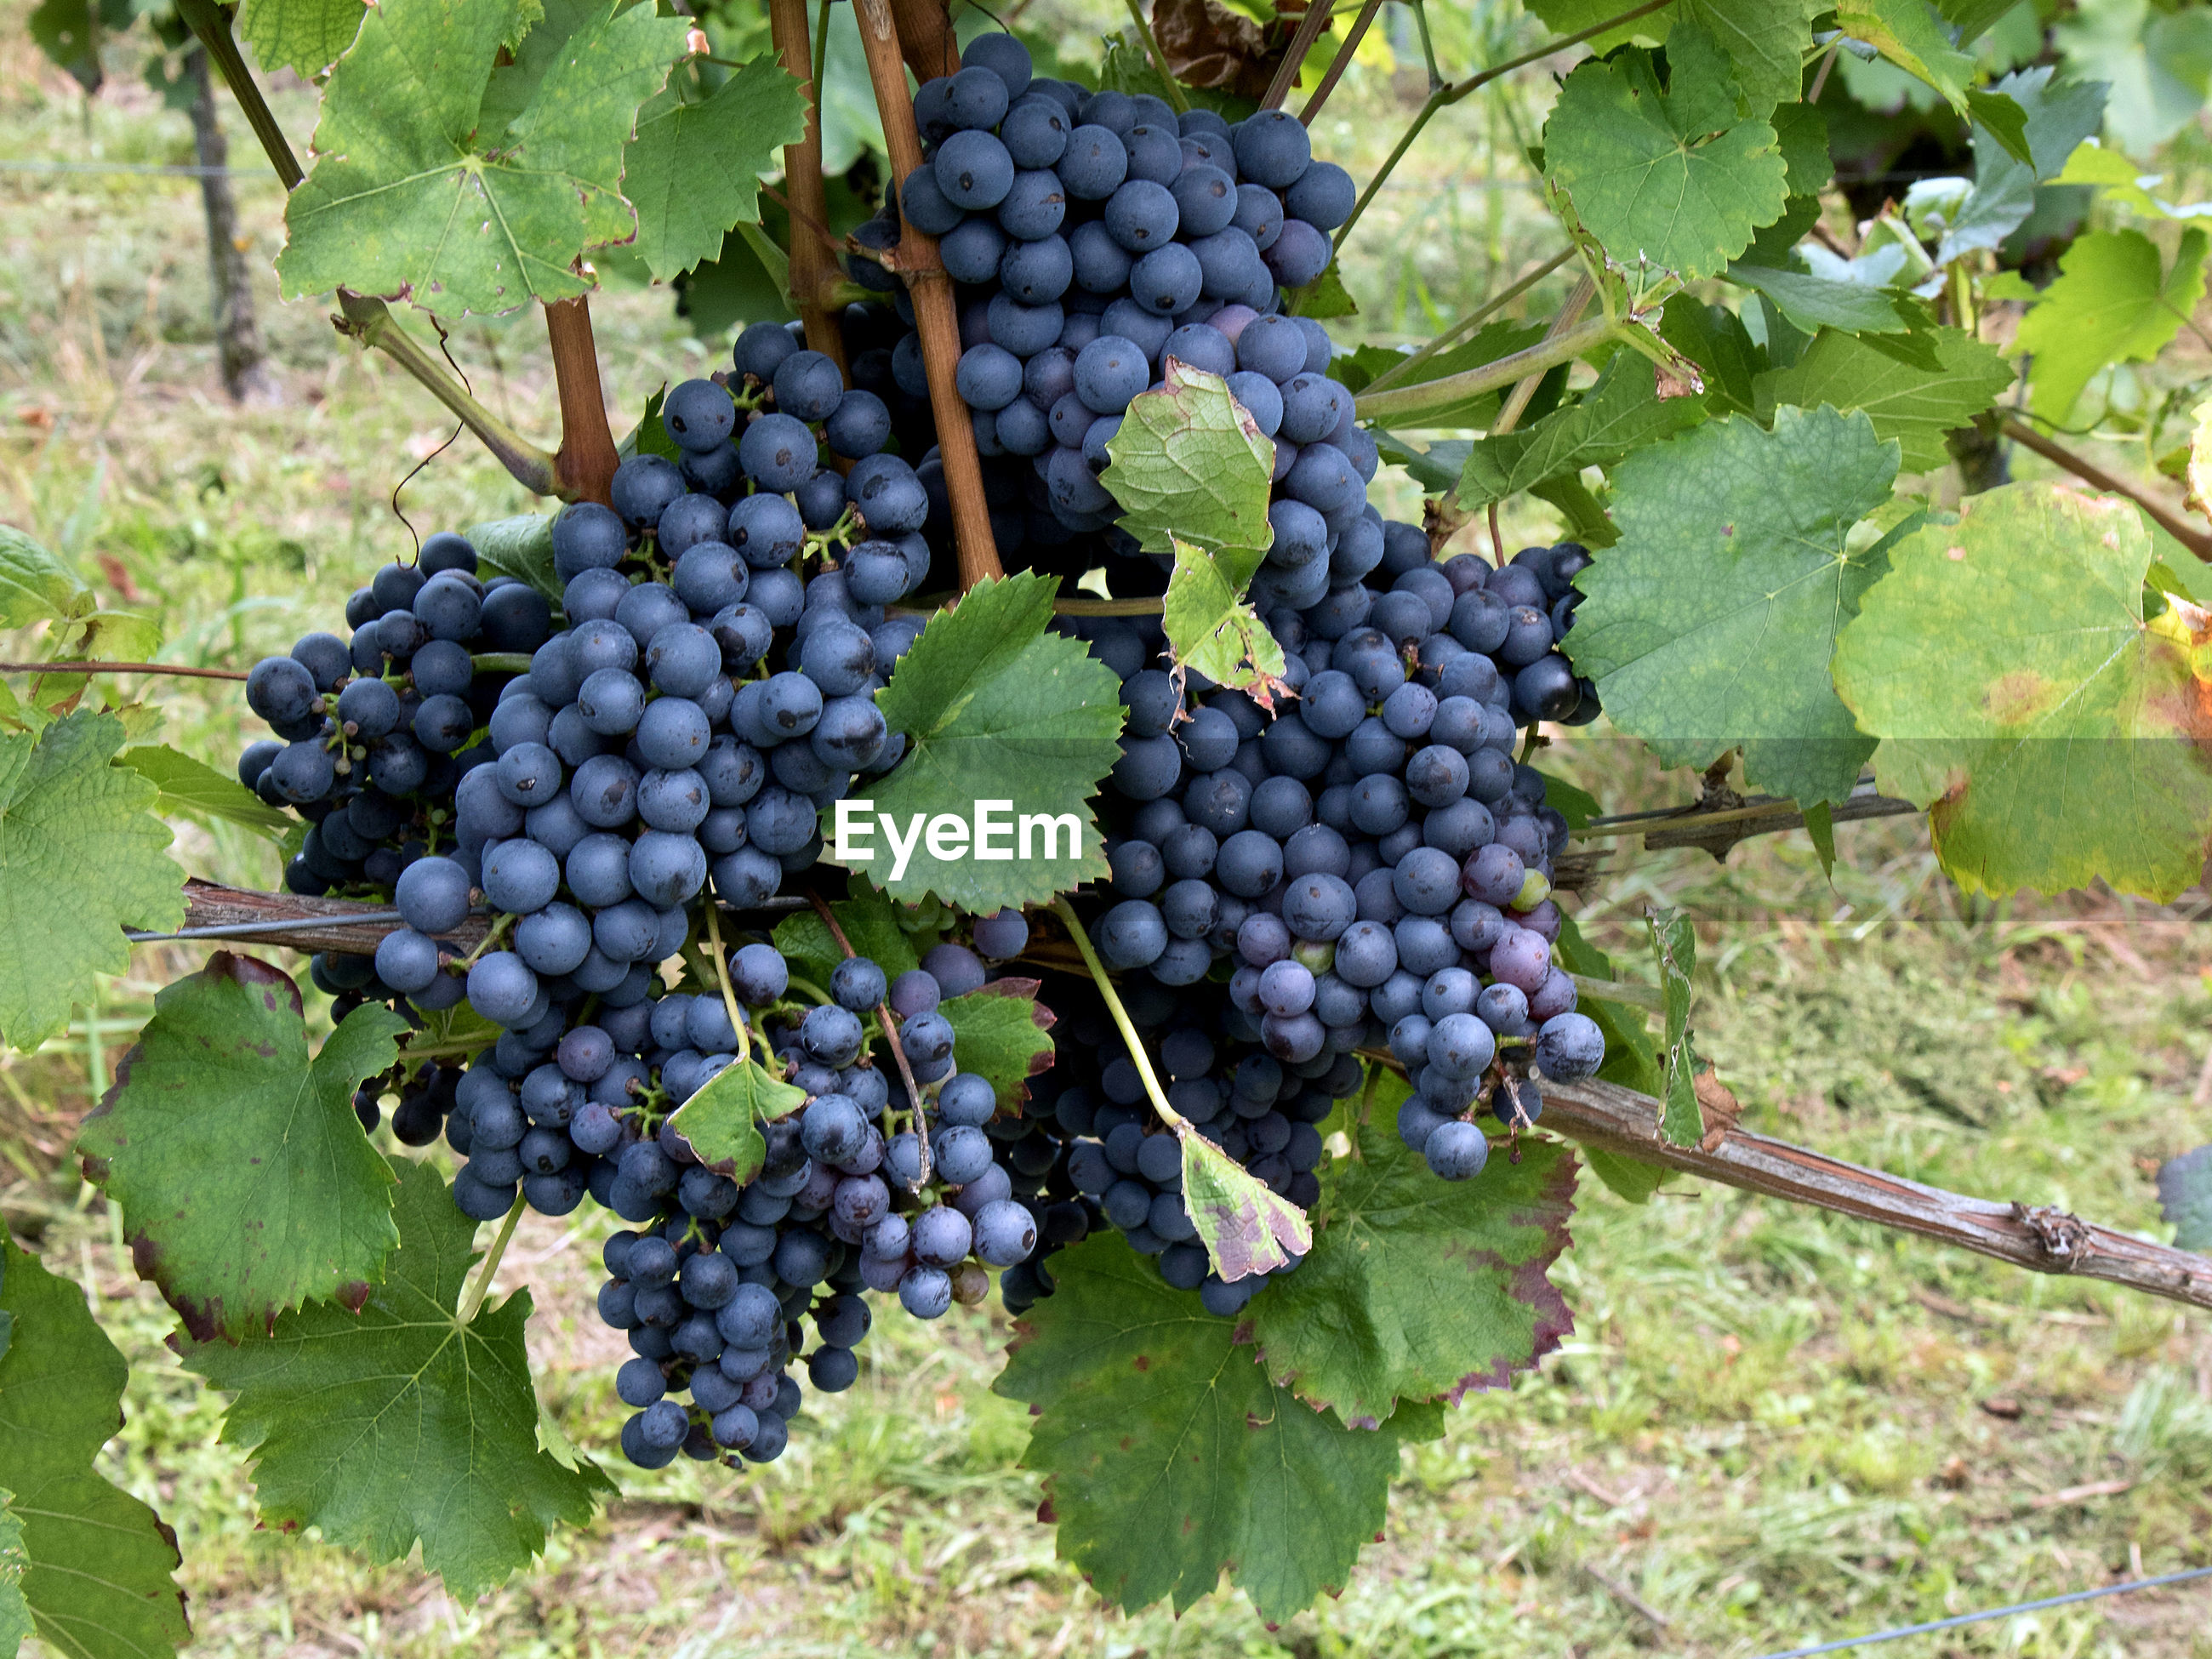 VIEW OF GRAPES